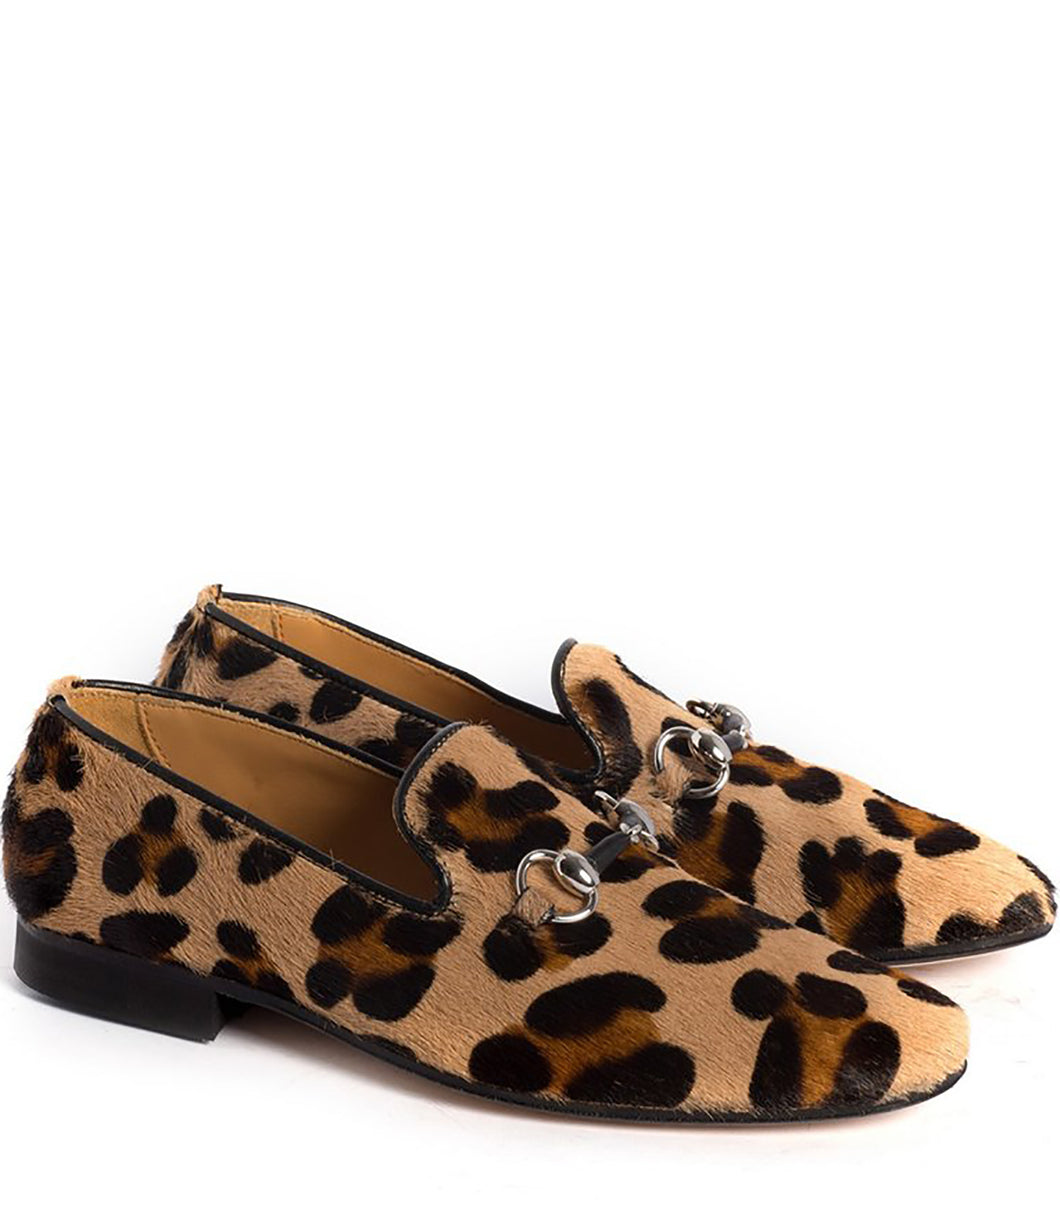 Slipper in Animalier Effect Pony Hair Leather